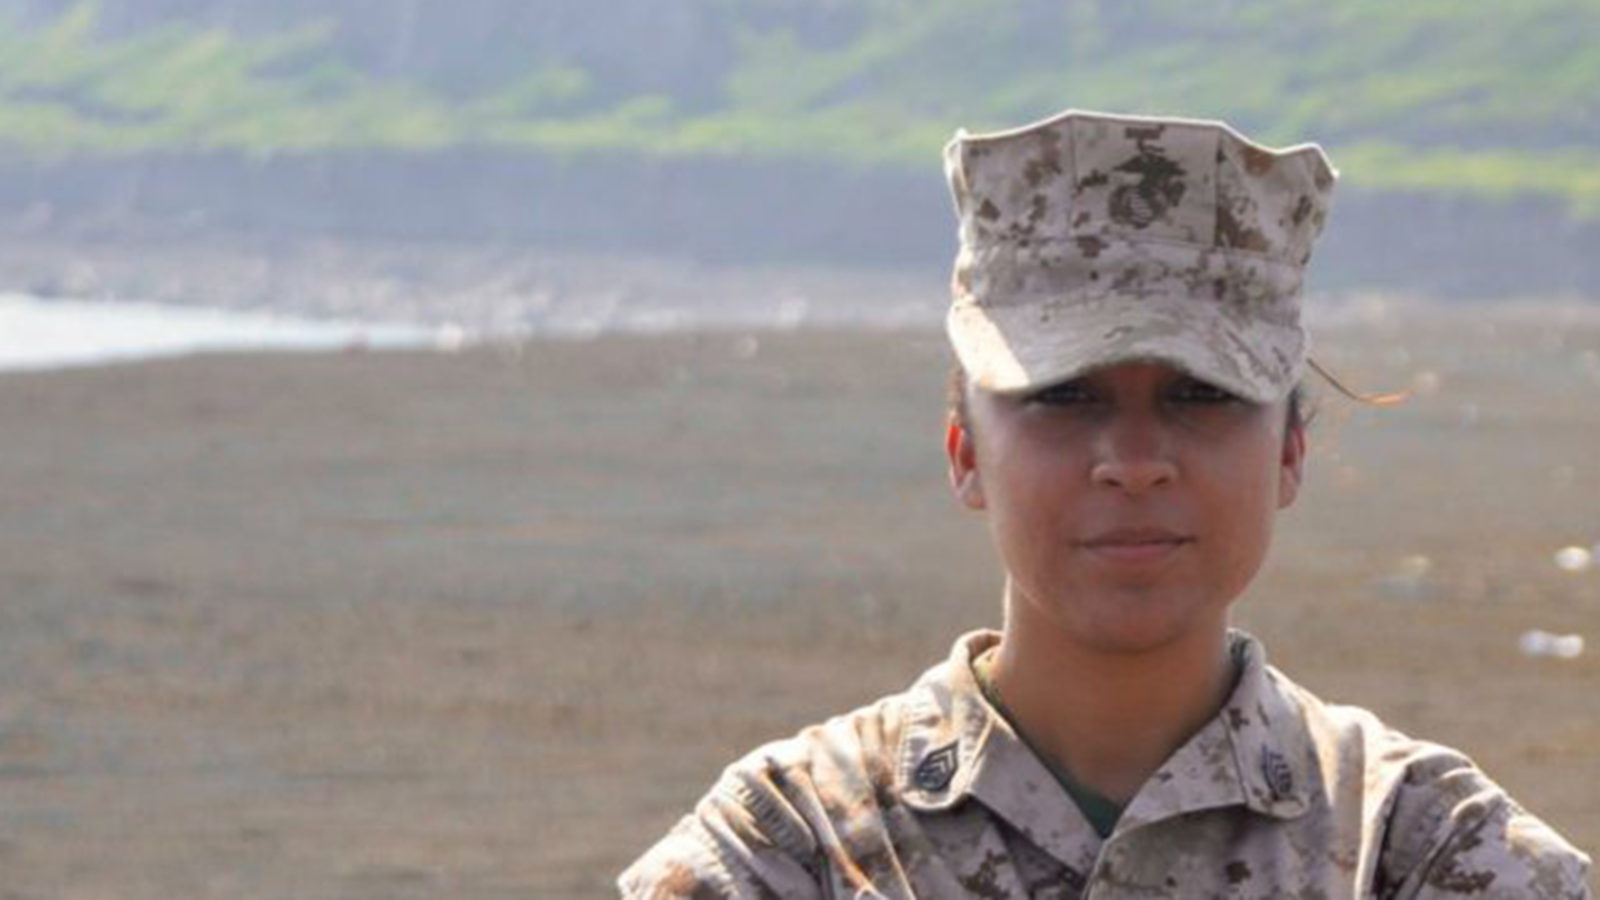 Jennifer Esparza wearing military fatigues in a desert area